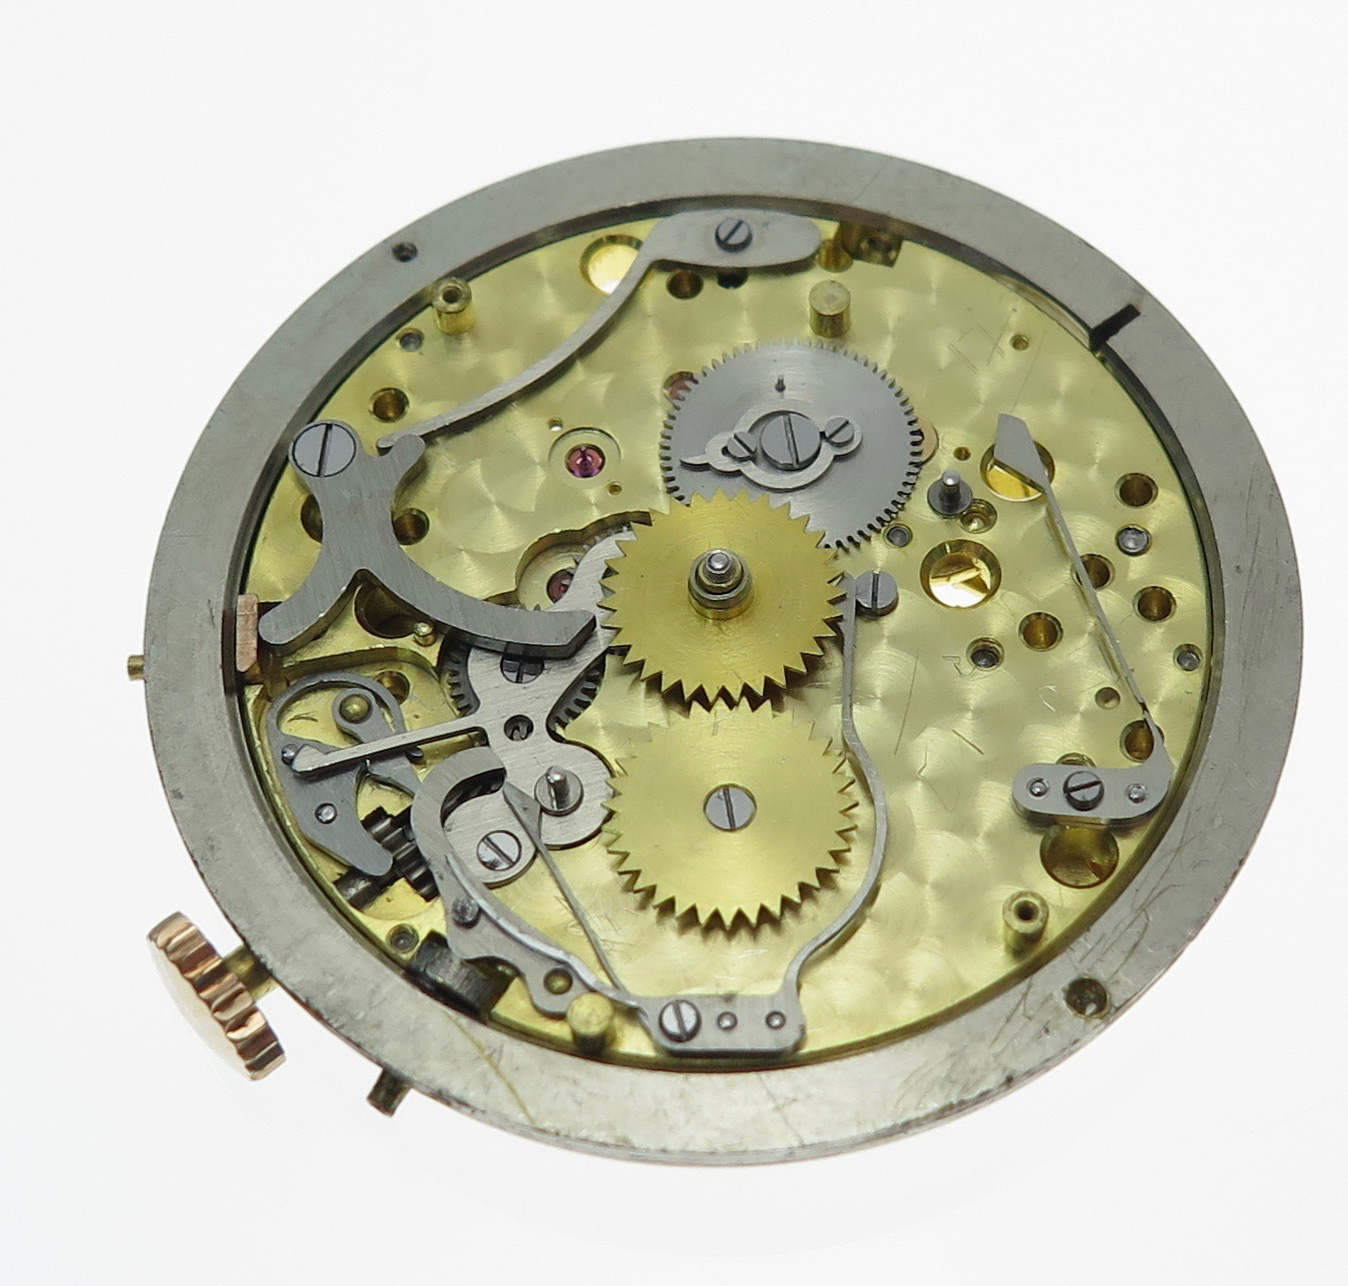 The dial side viewed with out the calendar discs